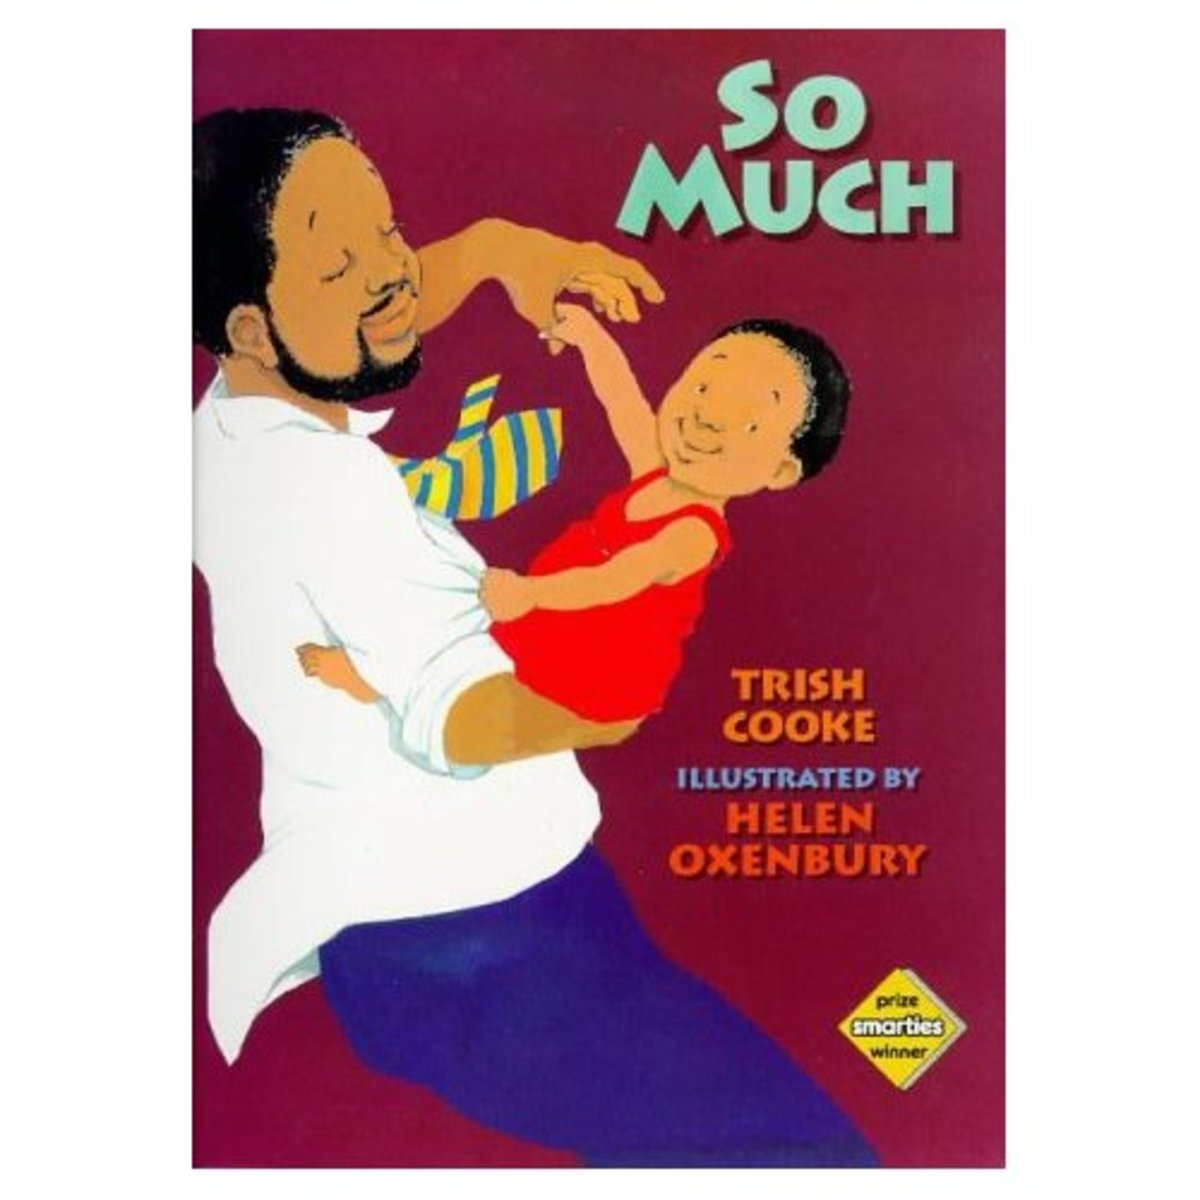 So Much by Trish Cooke and Helen Oxenbury Children's Book Review